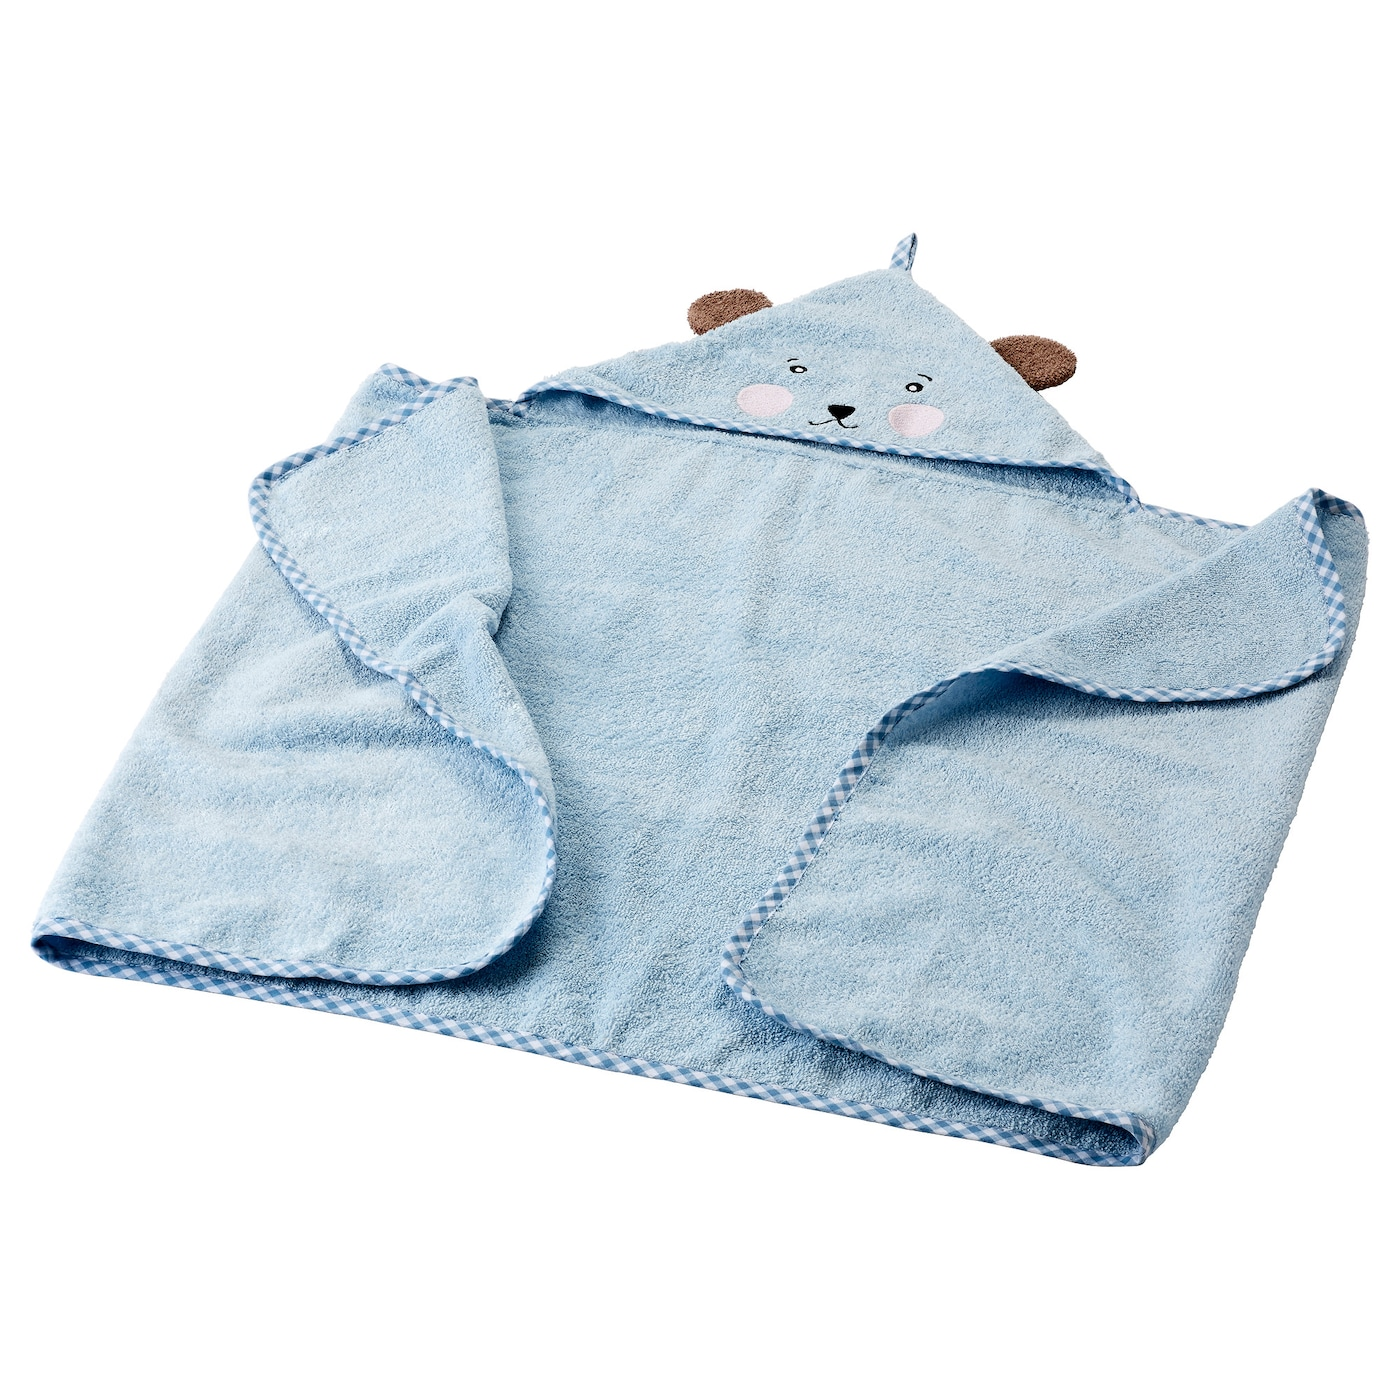 IKEA BADET baby towel with hood Cotton, soft and nice to baby skin.